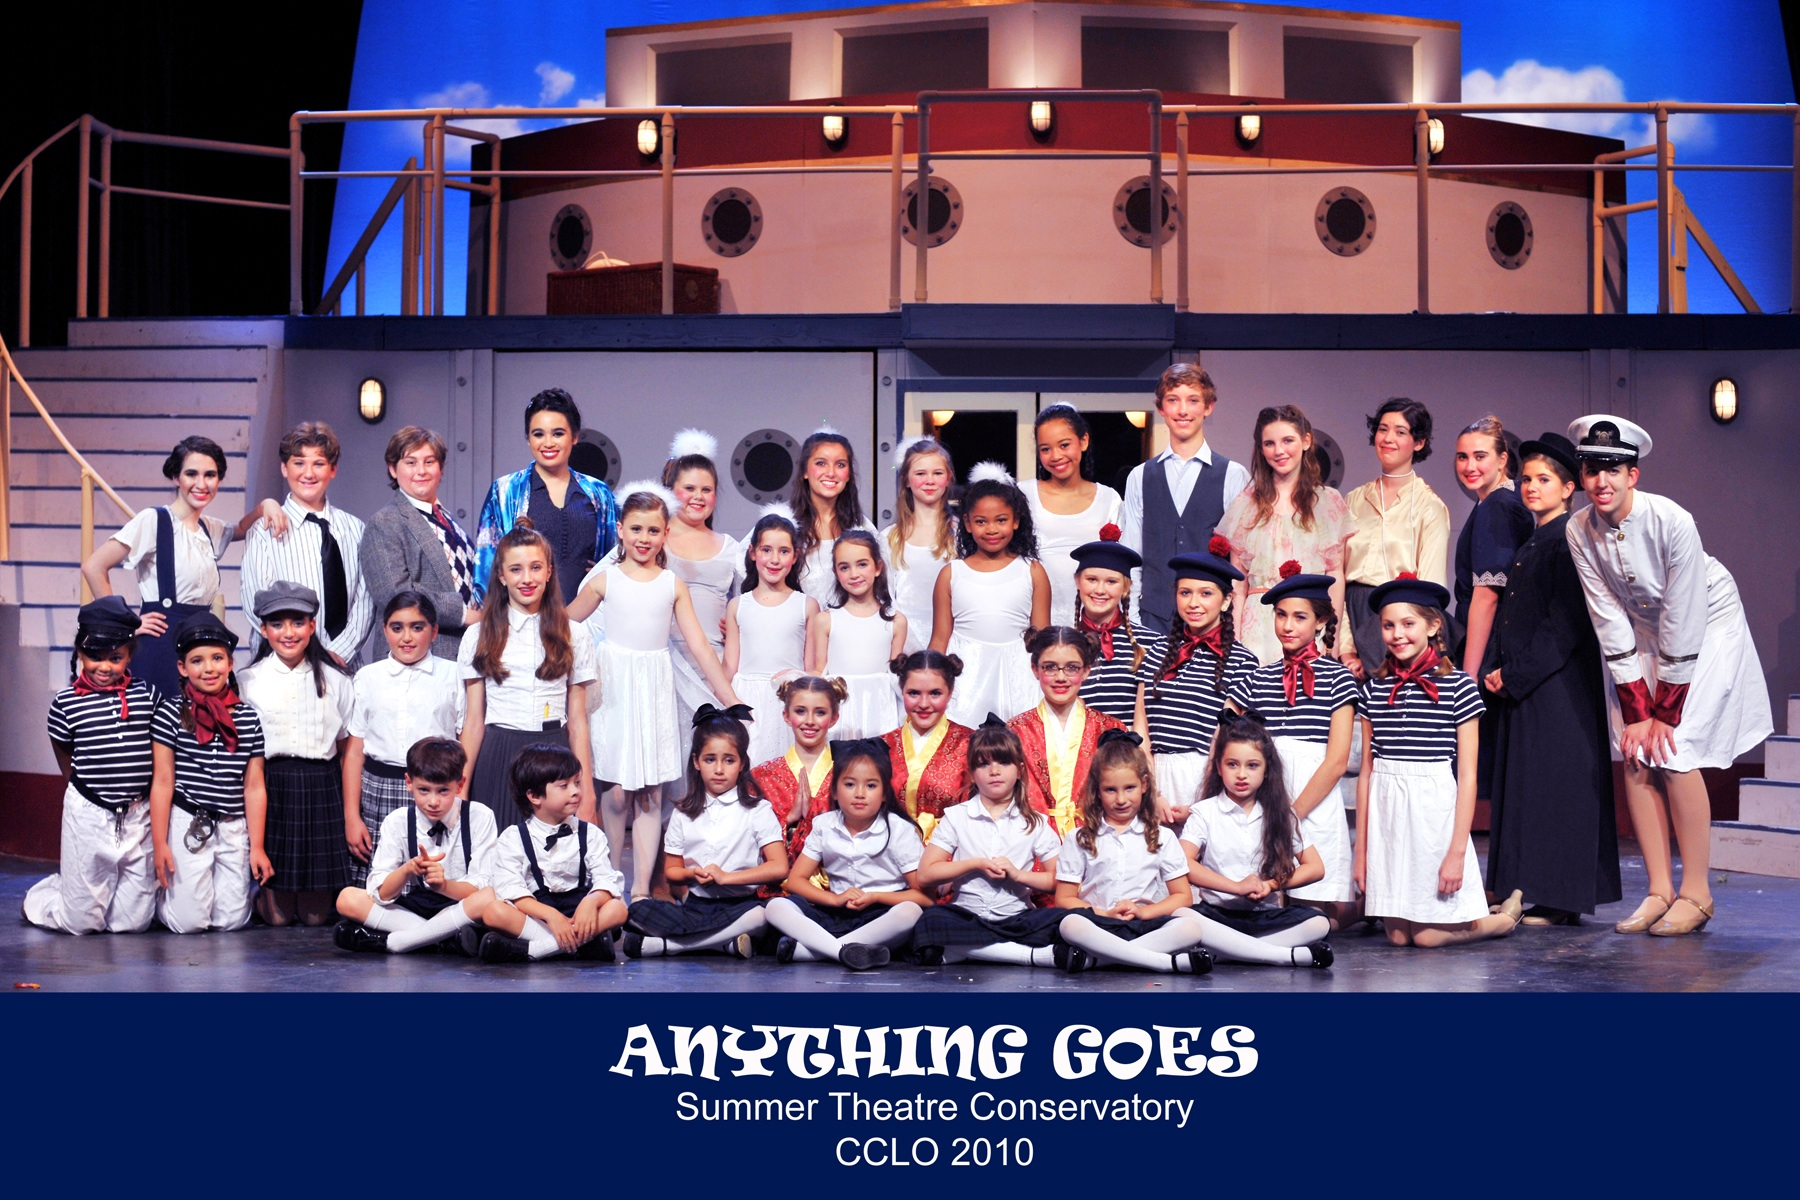 ANYTHING GOES cast photo